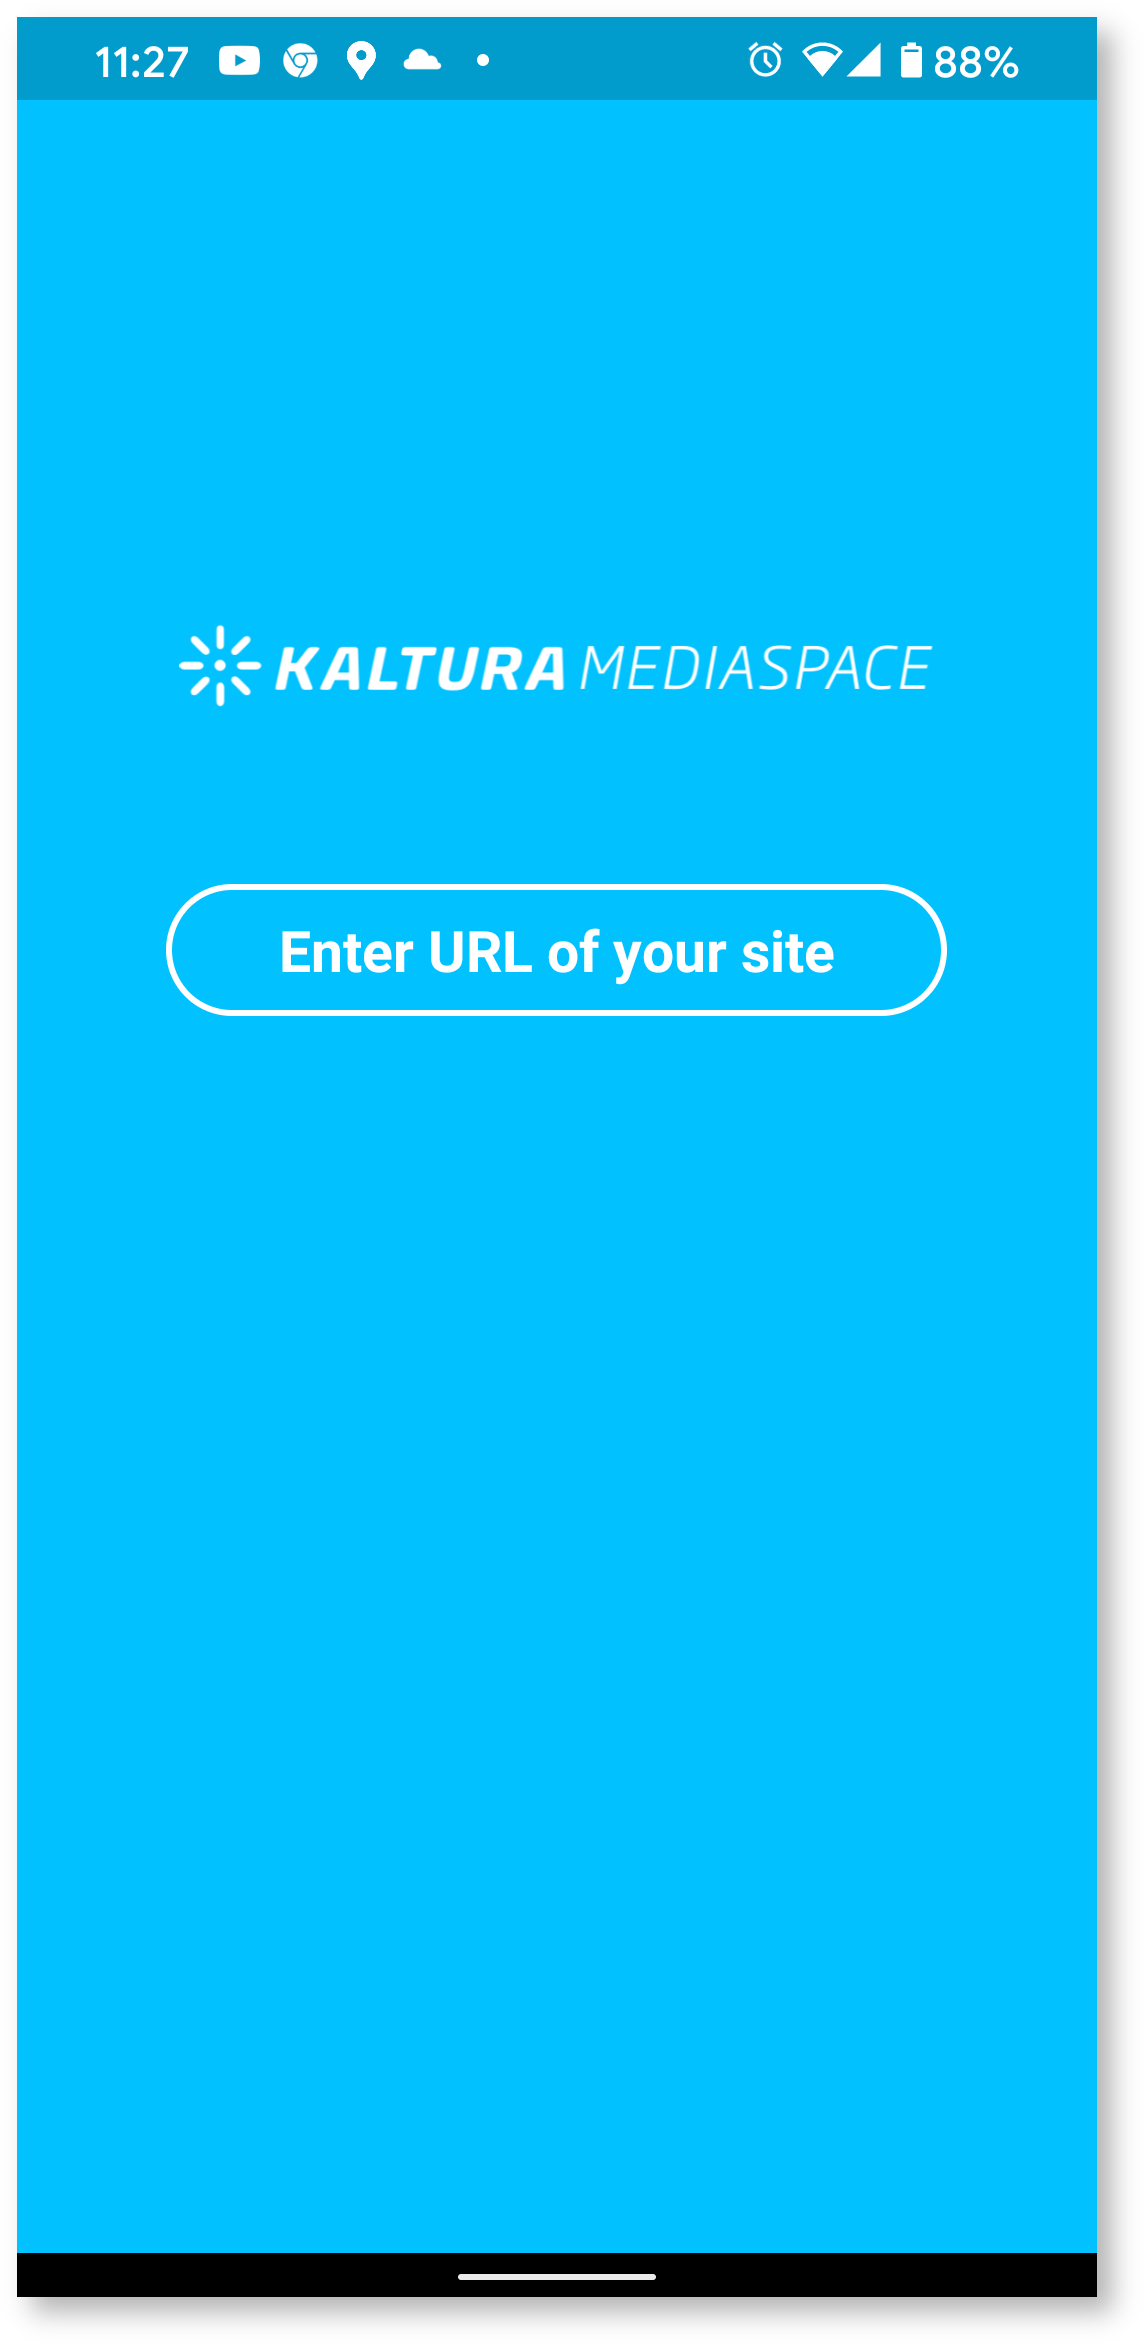 kaltura initial setup screen Android phone